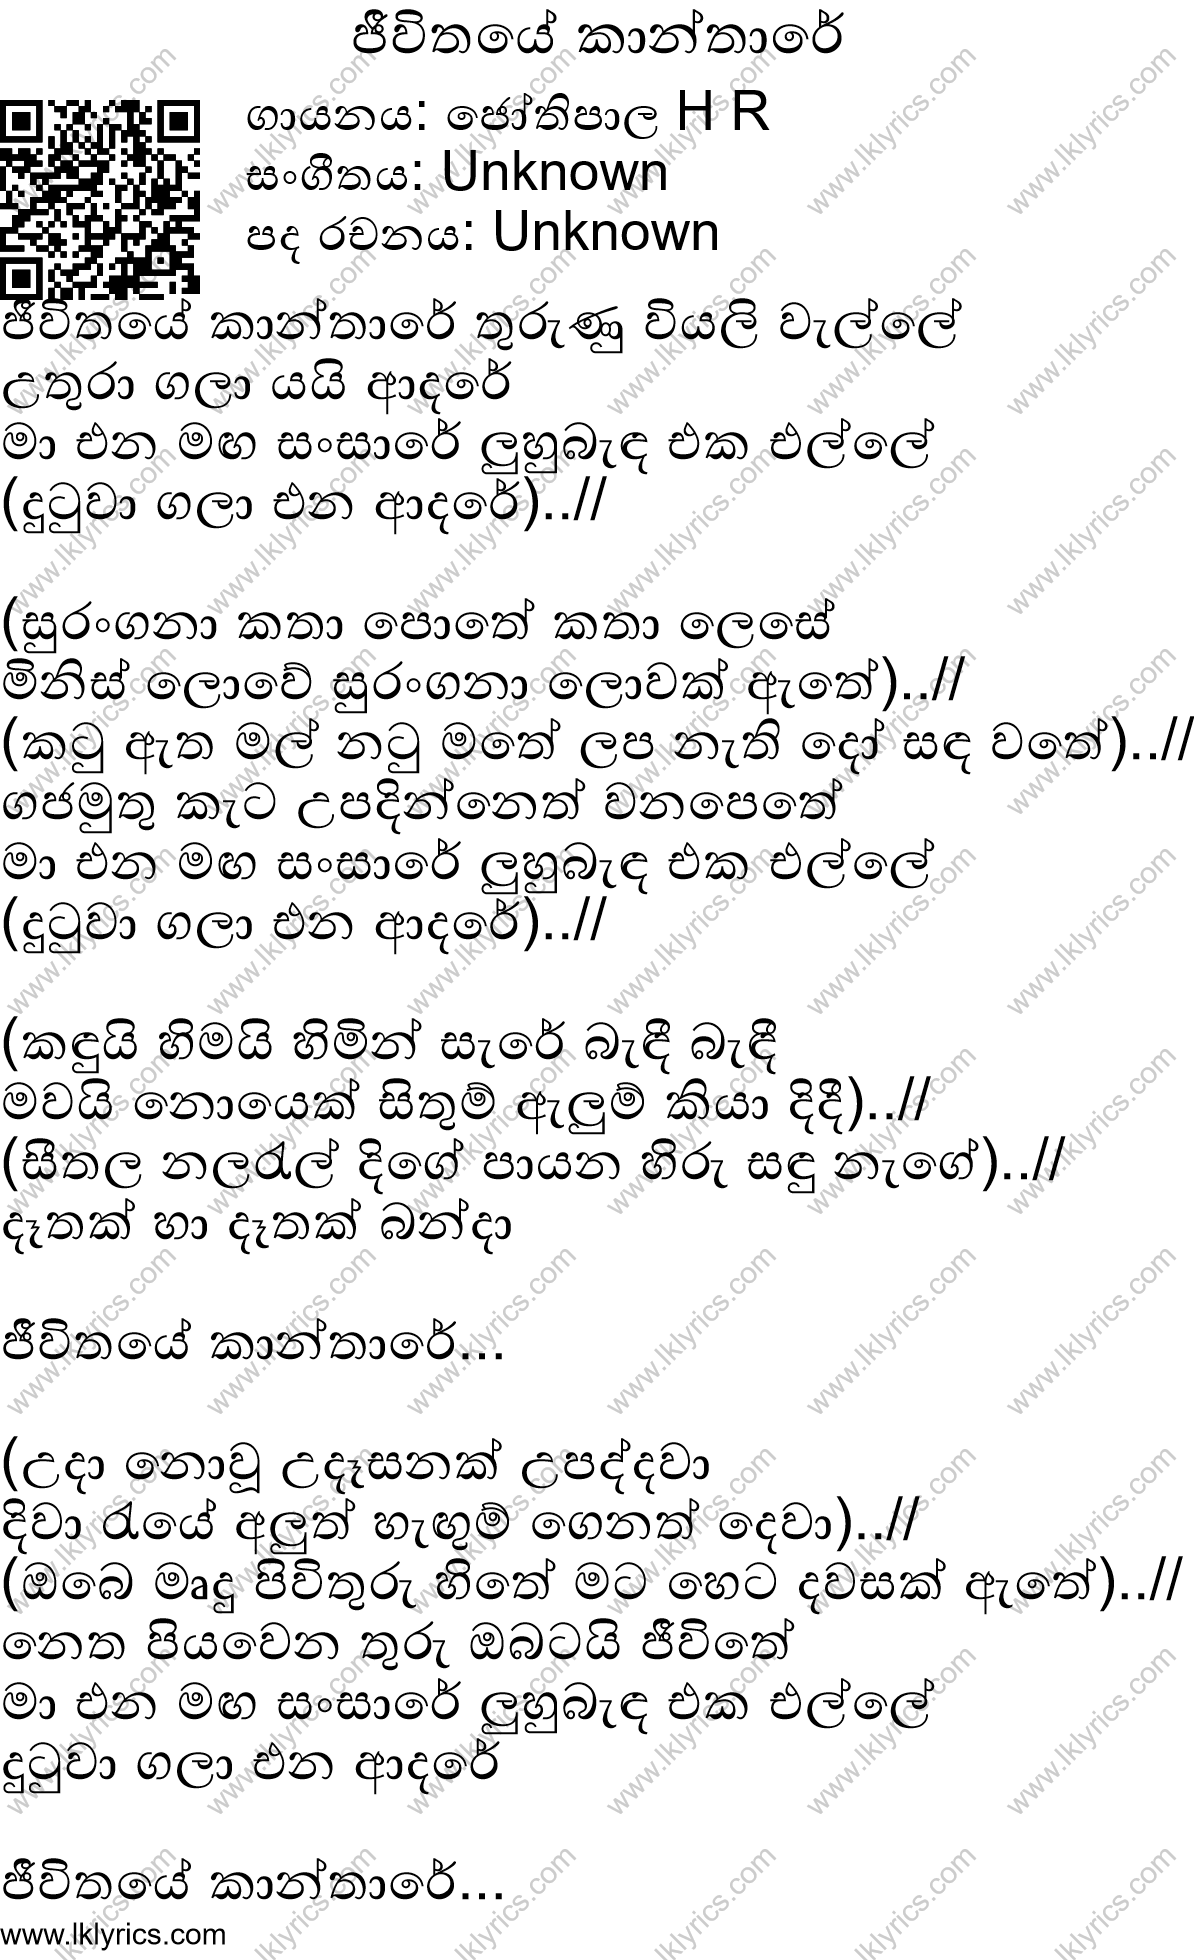 jeewithe tharuna kale song